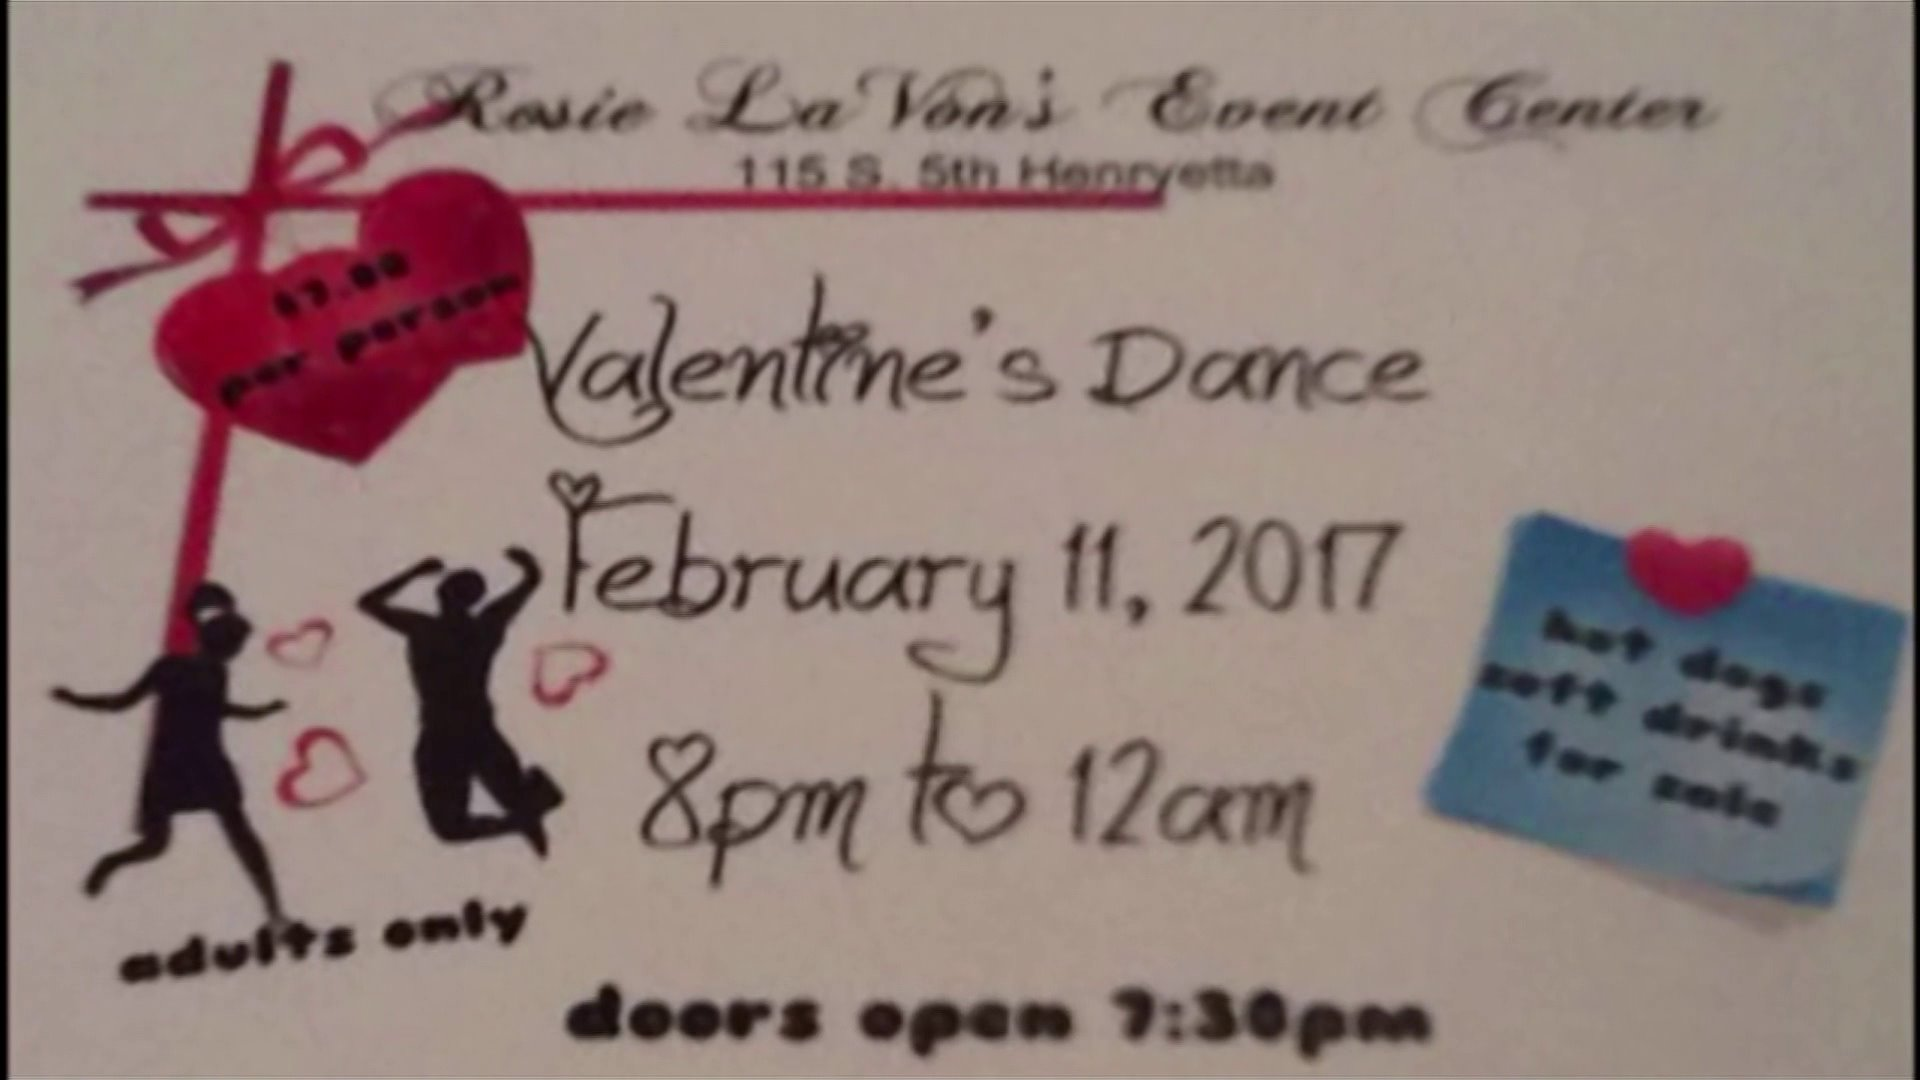 valentines-dance-canceled-1